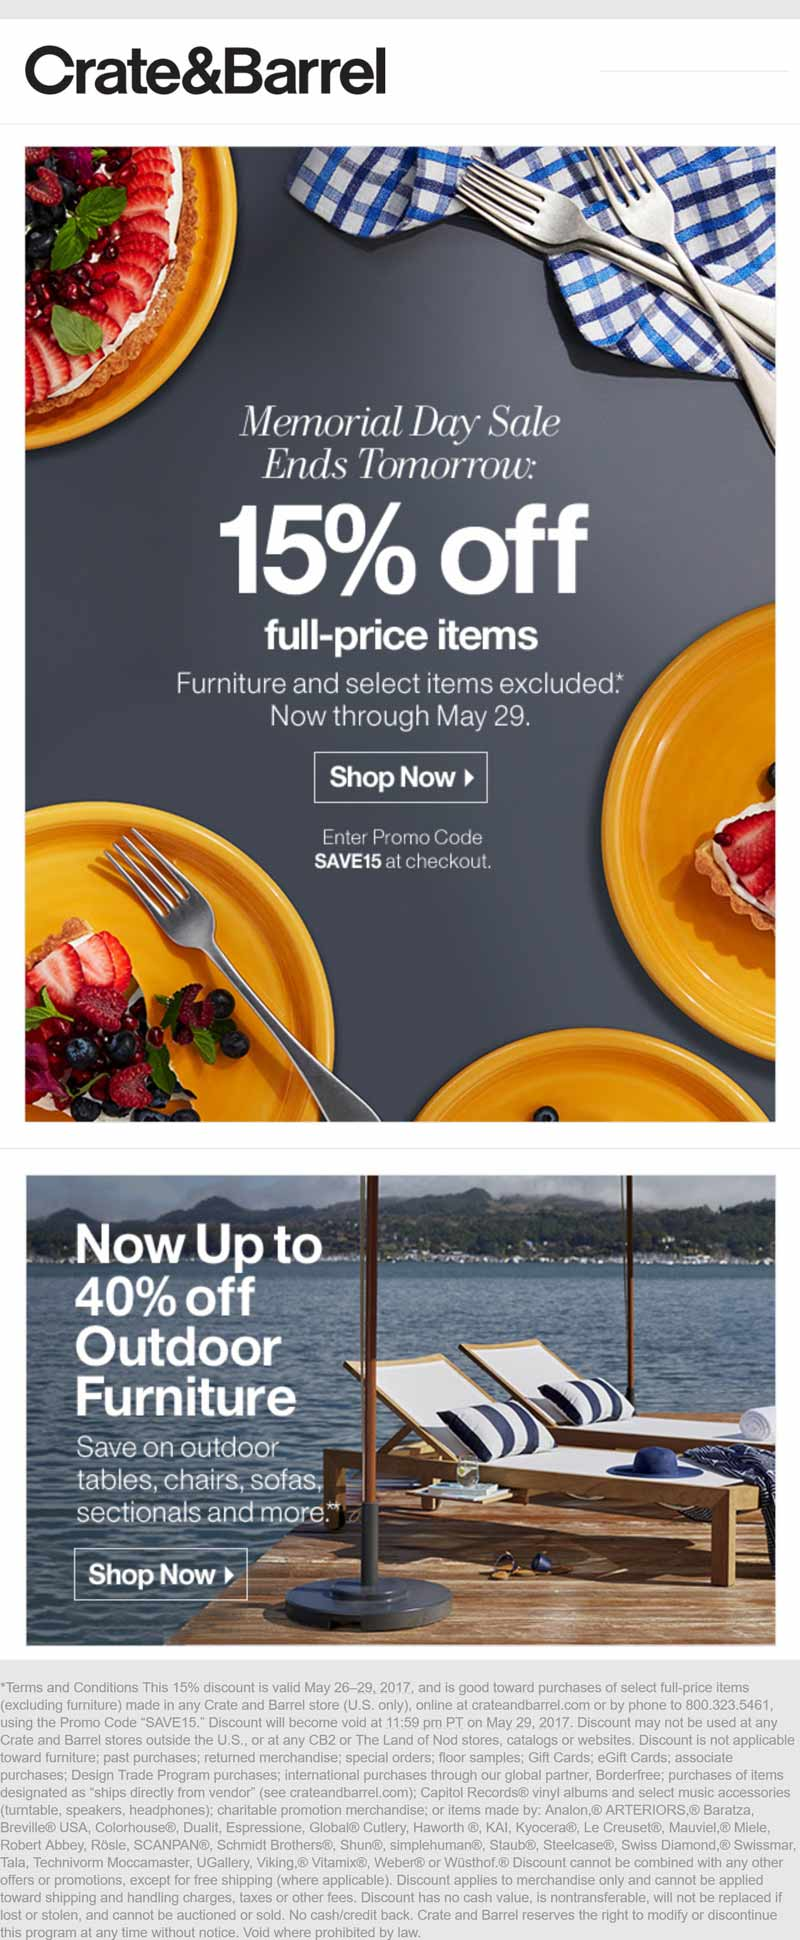 Crate & Barrel Coupon March 2019 15% off at Crate & Barrel, or online via promo code SAVE15